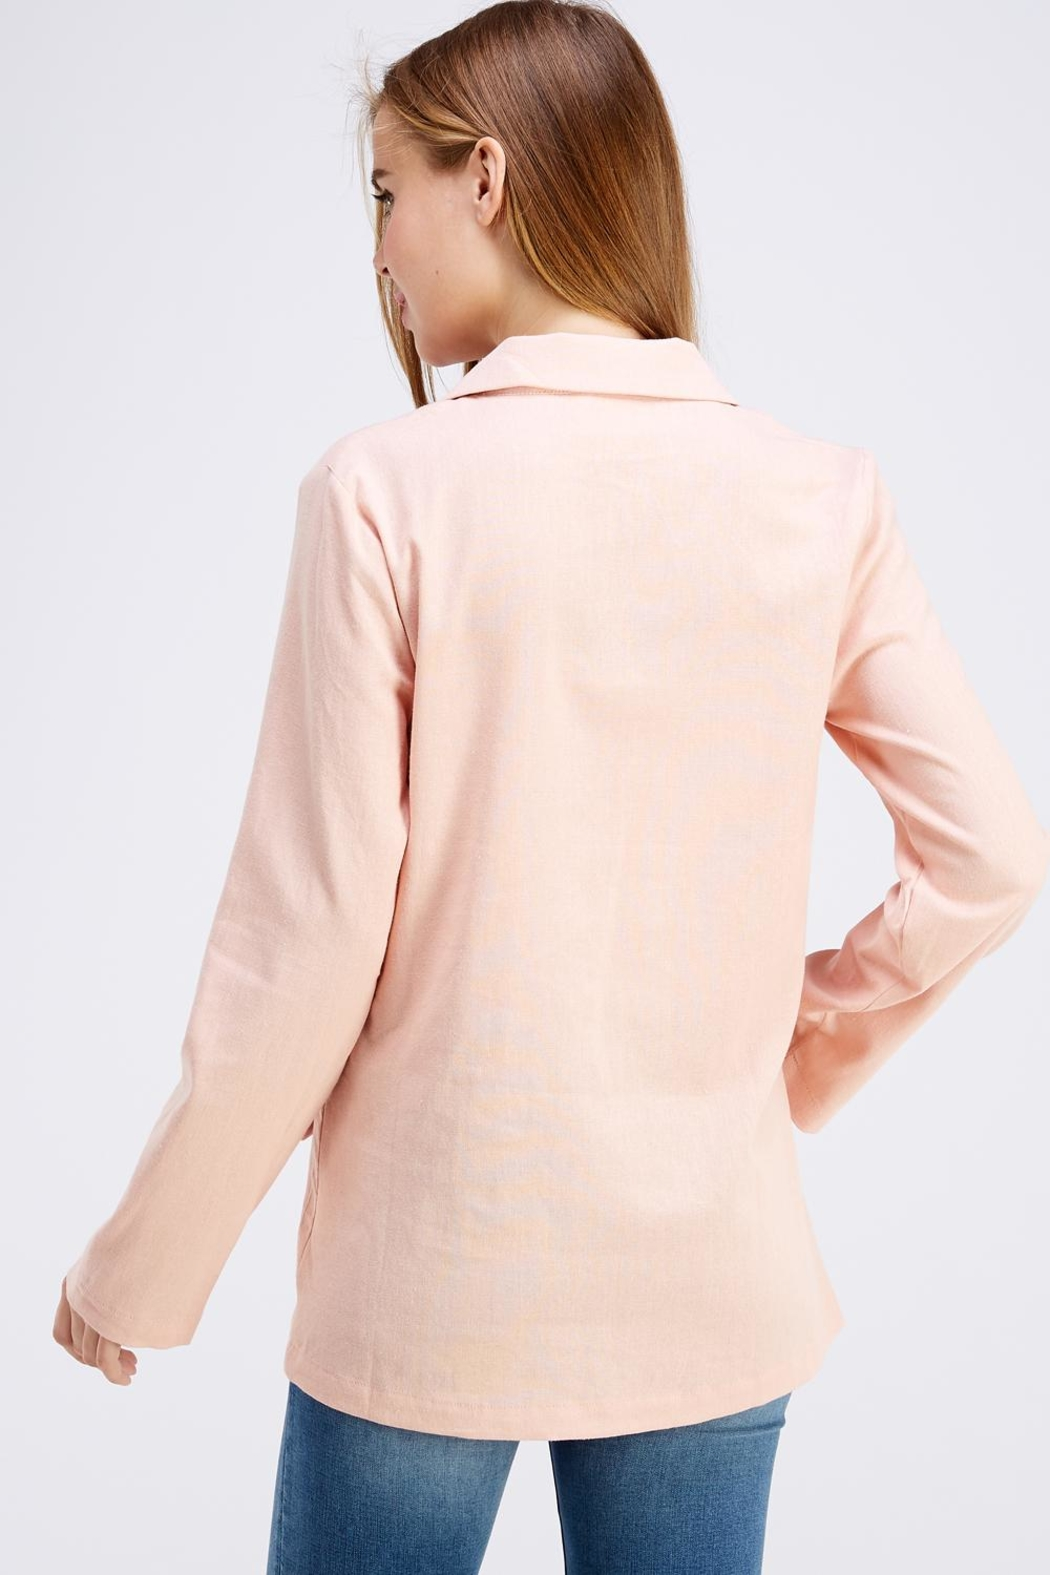 Cotton Candy LA Pink Linen Blazer - Side Cropped Image